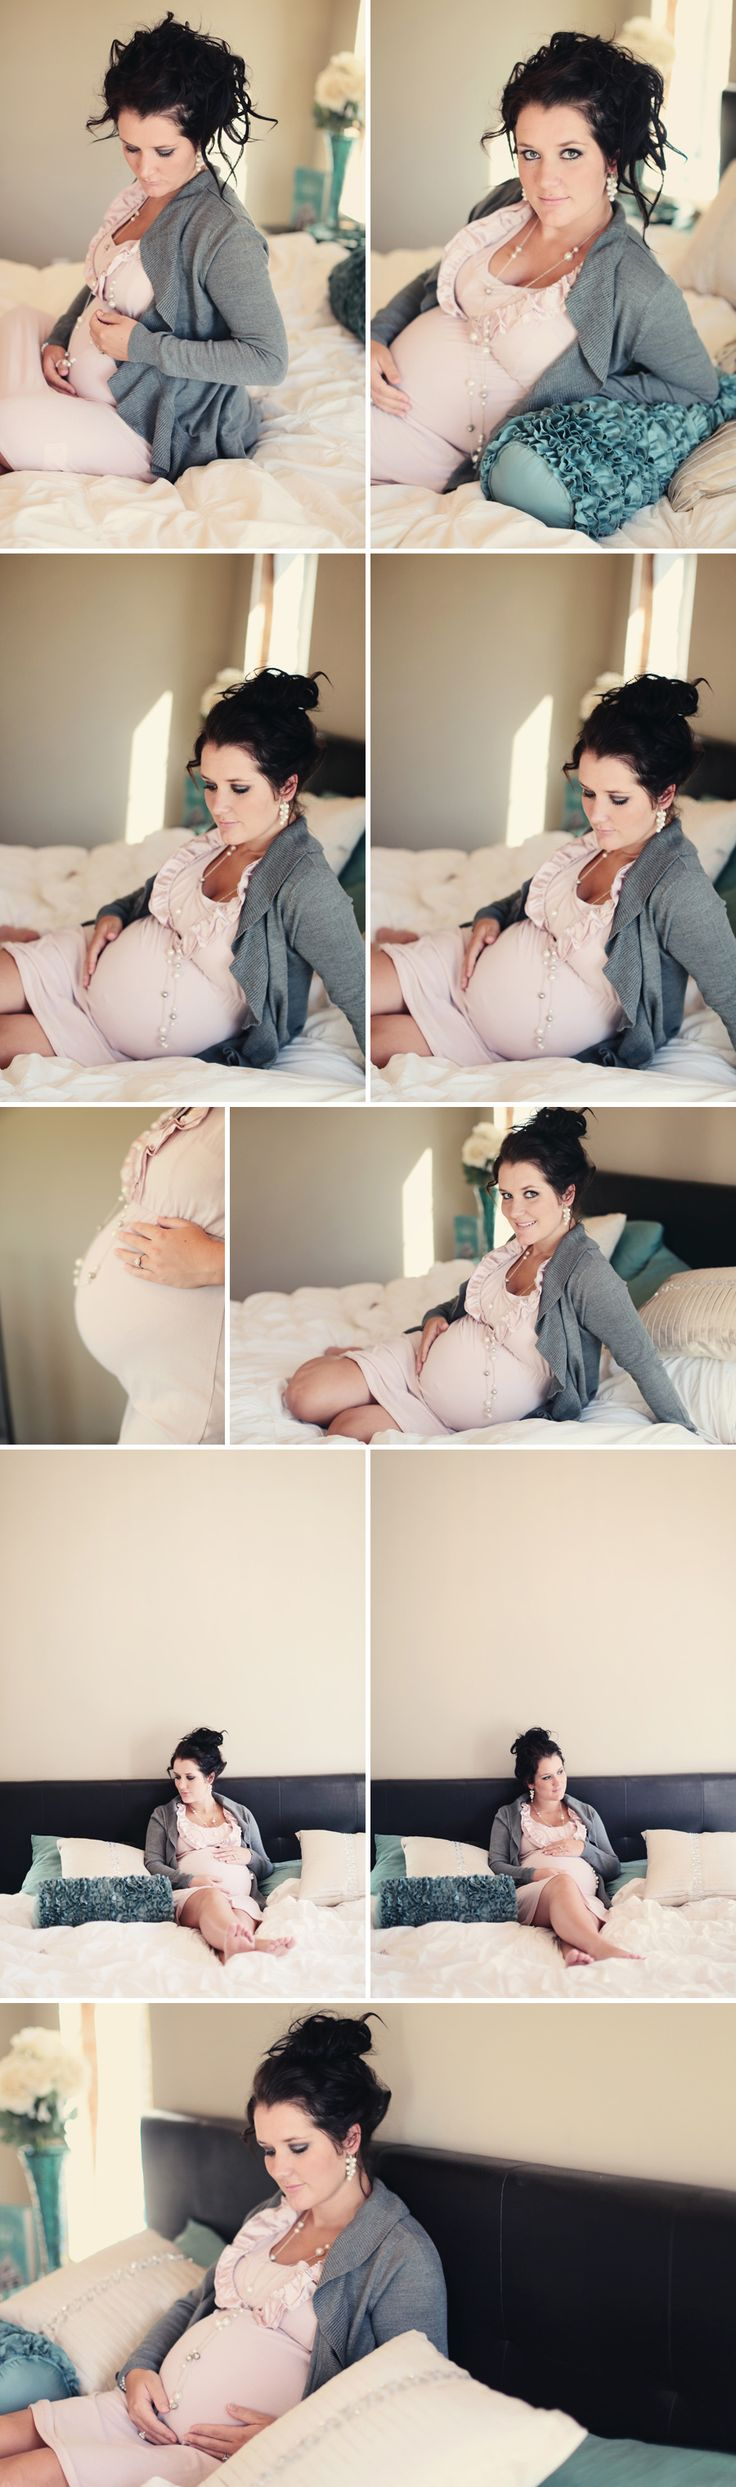 Pink bedroom maternity session, Maternity pregnancy session